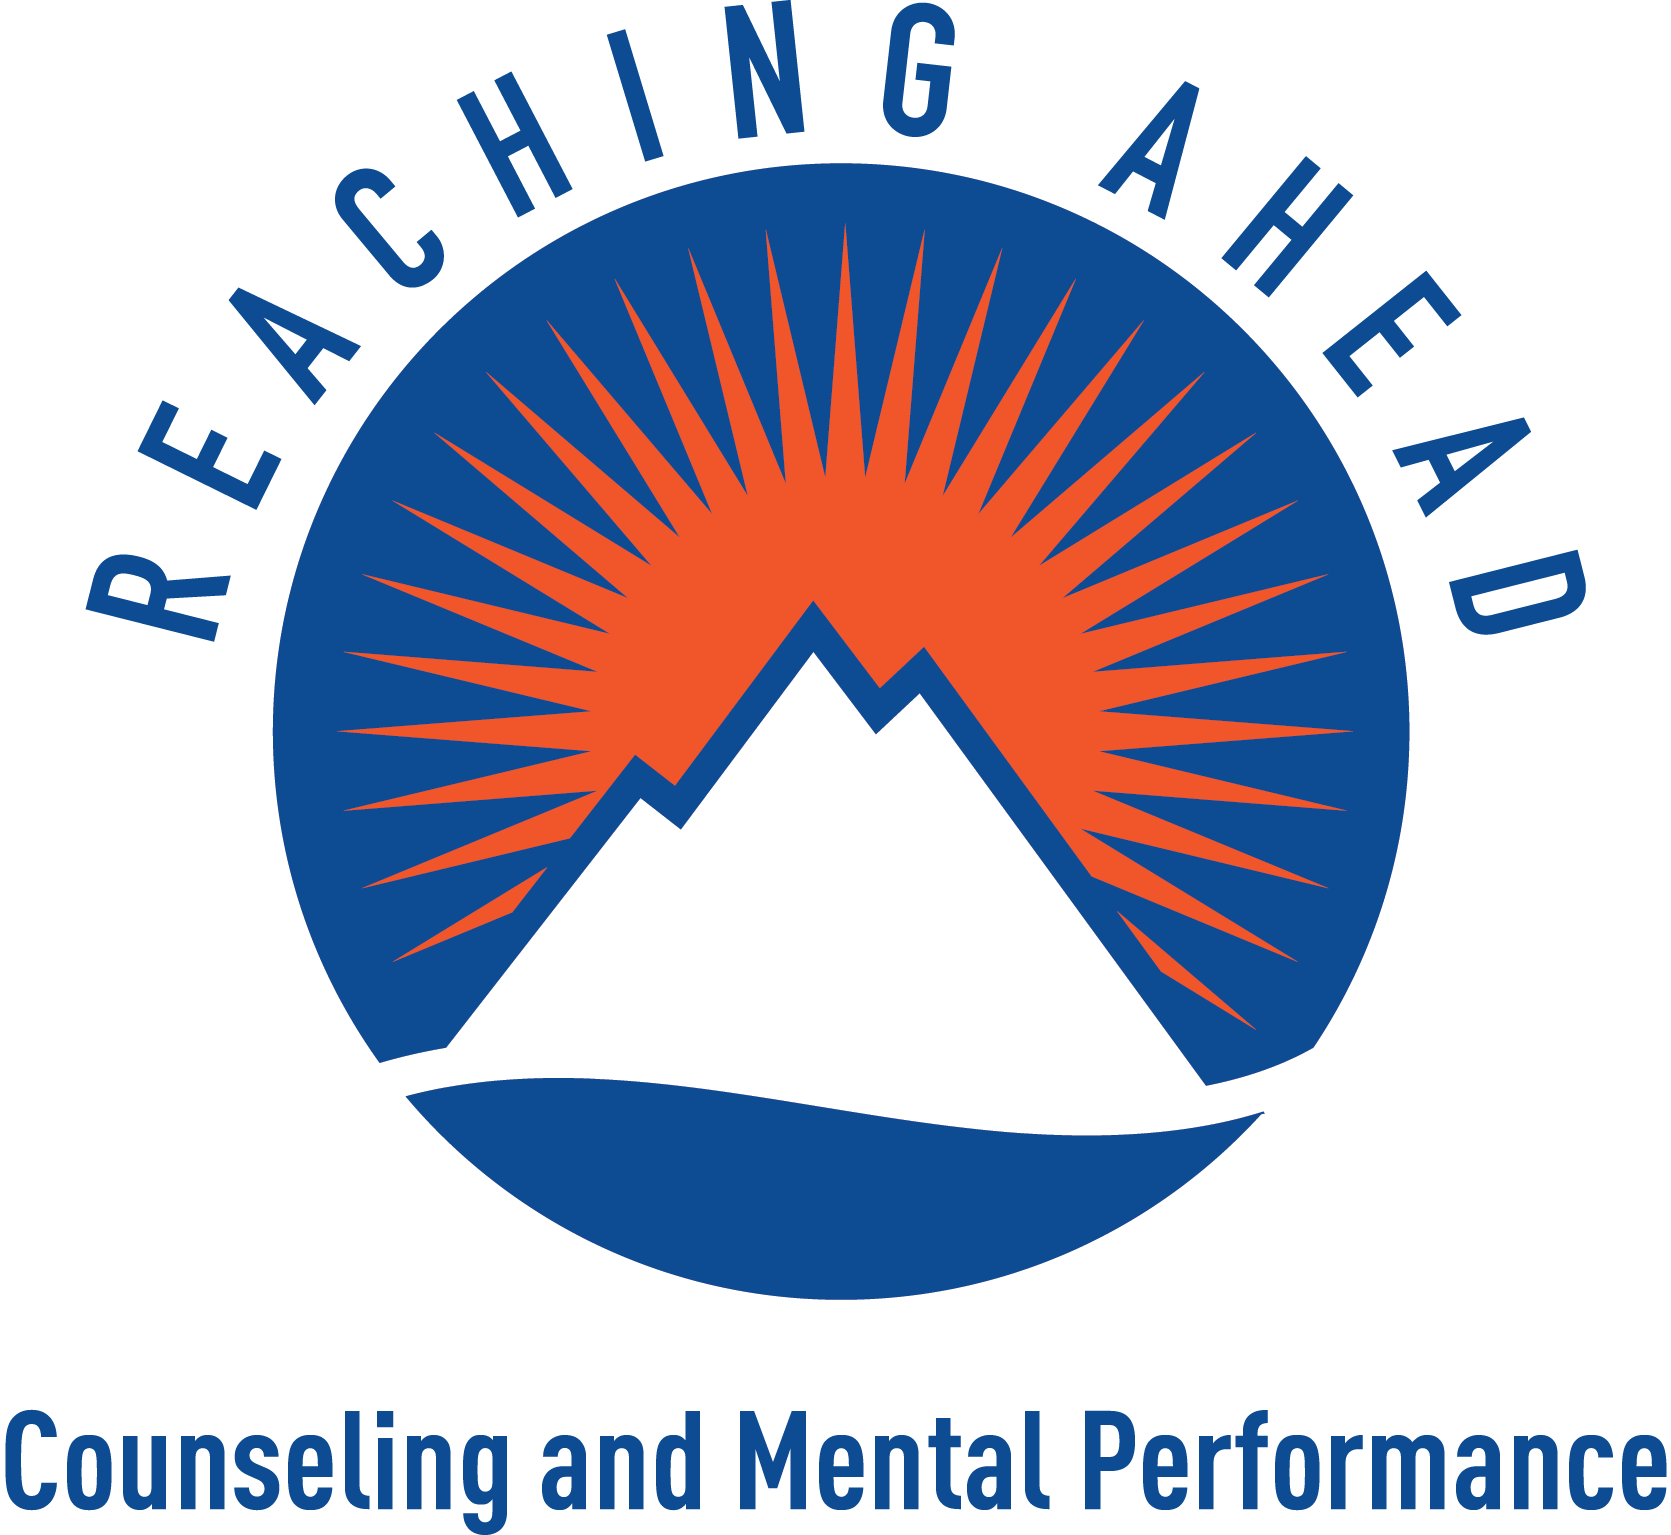 reaching-ahead-counseling-mental-performance-logo